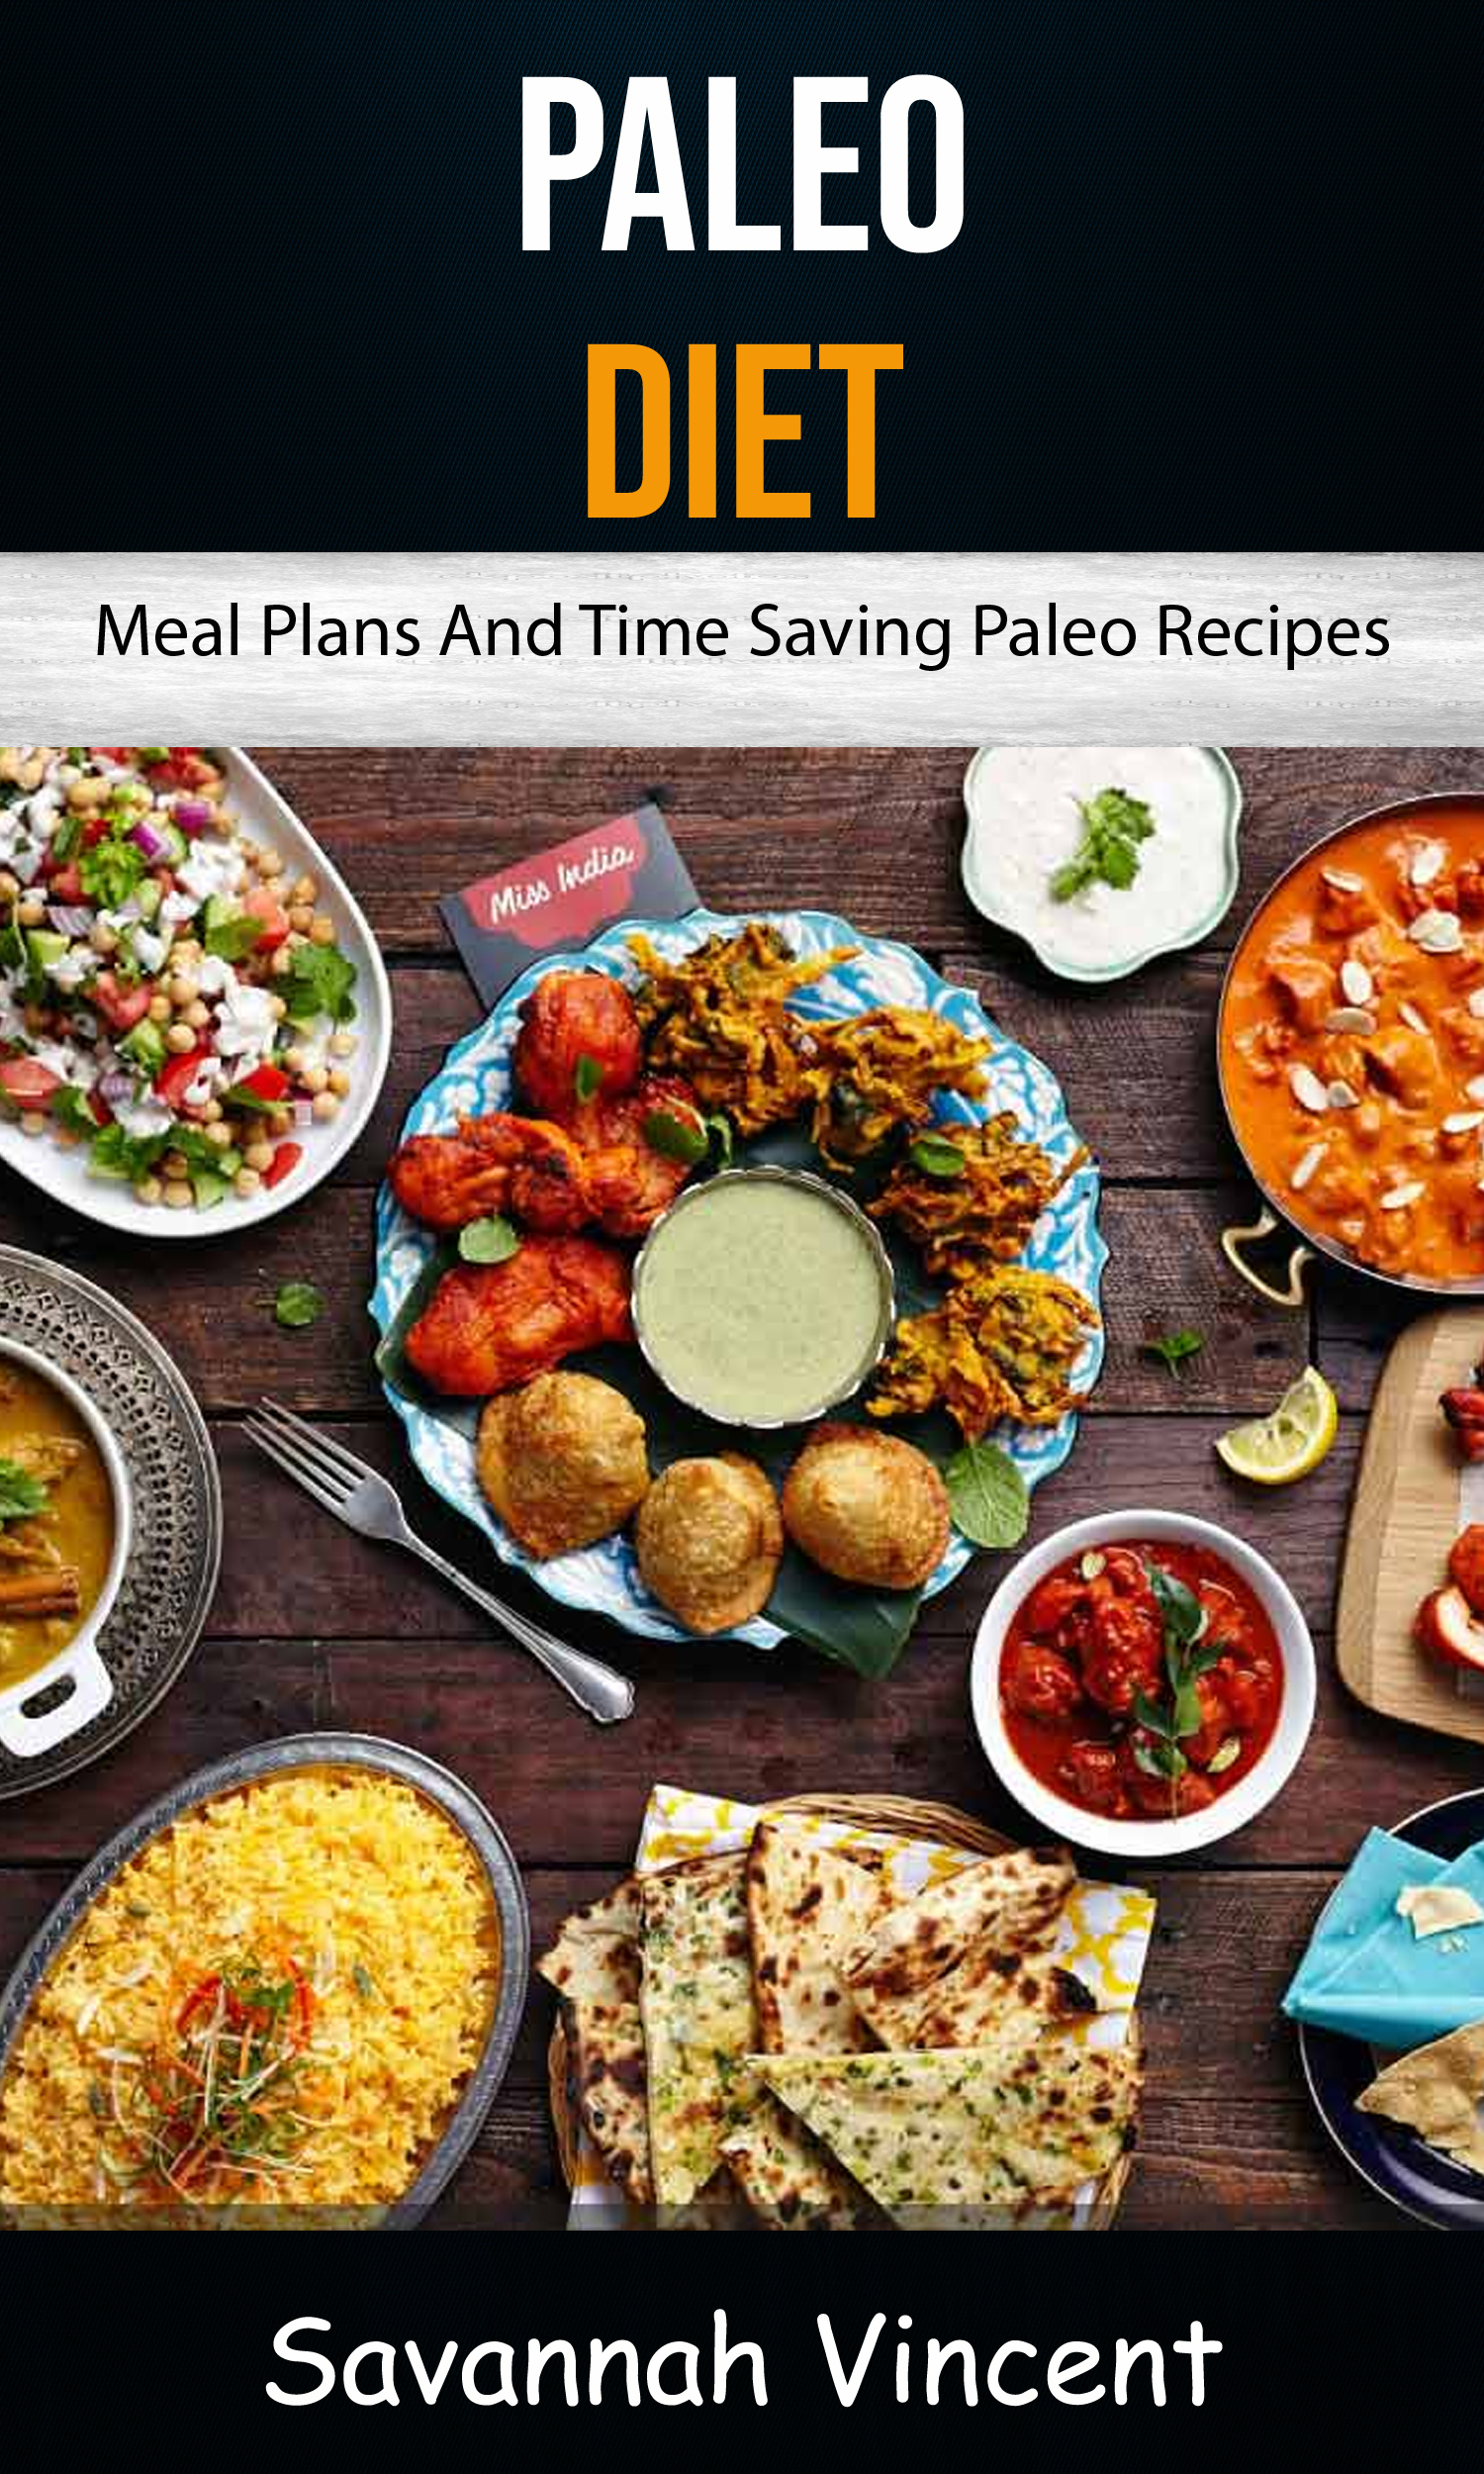 Paleo diet: meal plans and time saving paleo recipes